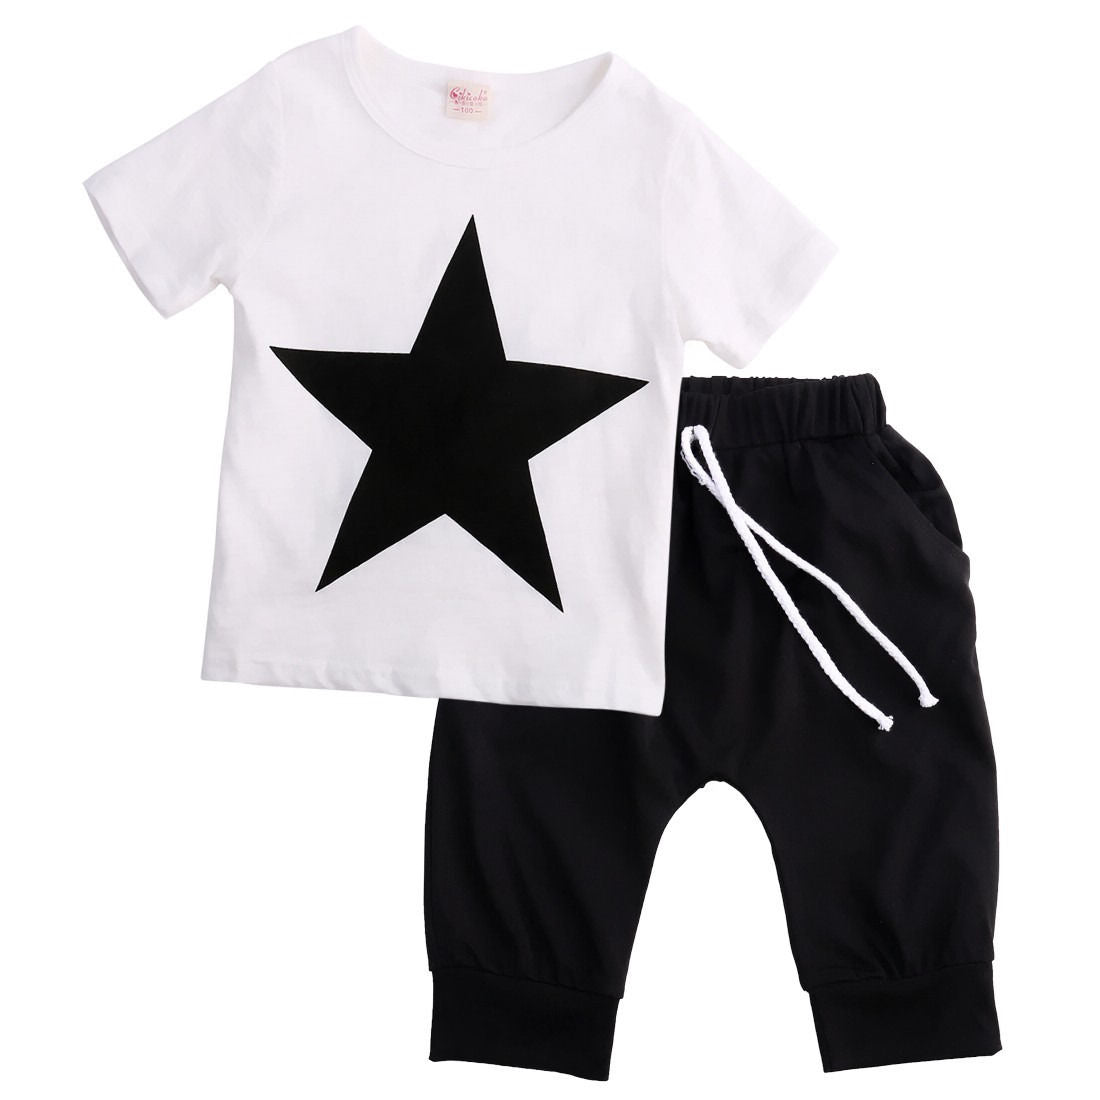 2pcs Boys summer outfits 2pcs baby cotton summer Tee short pants cool star